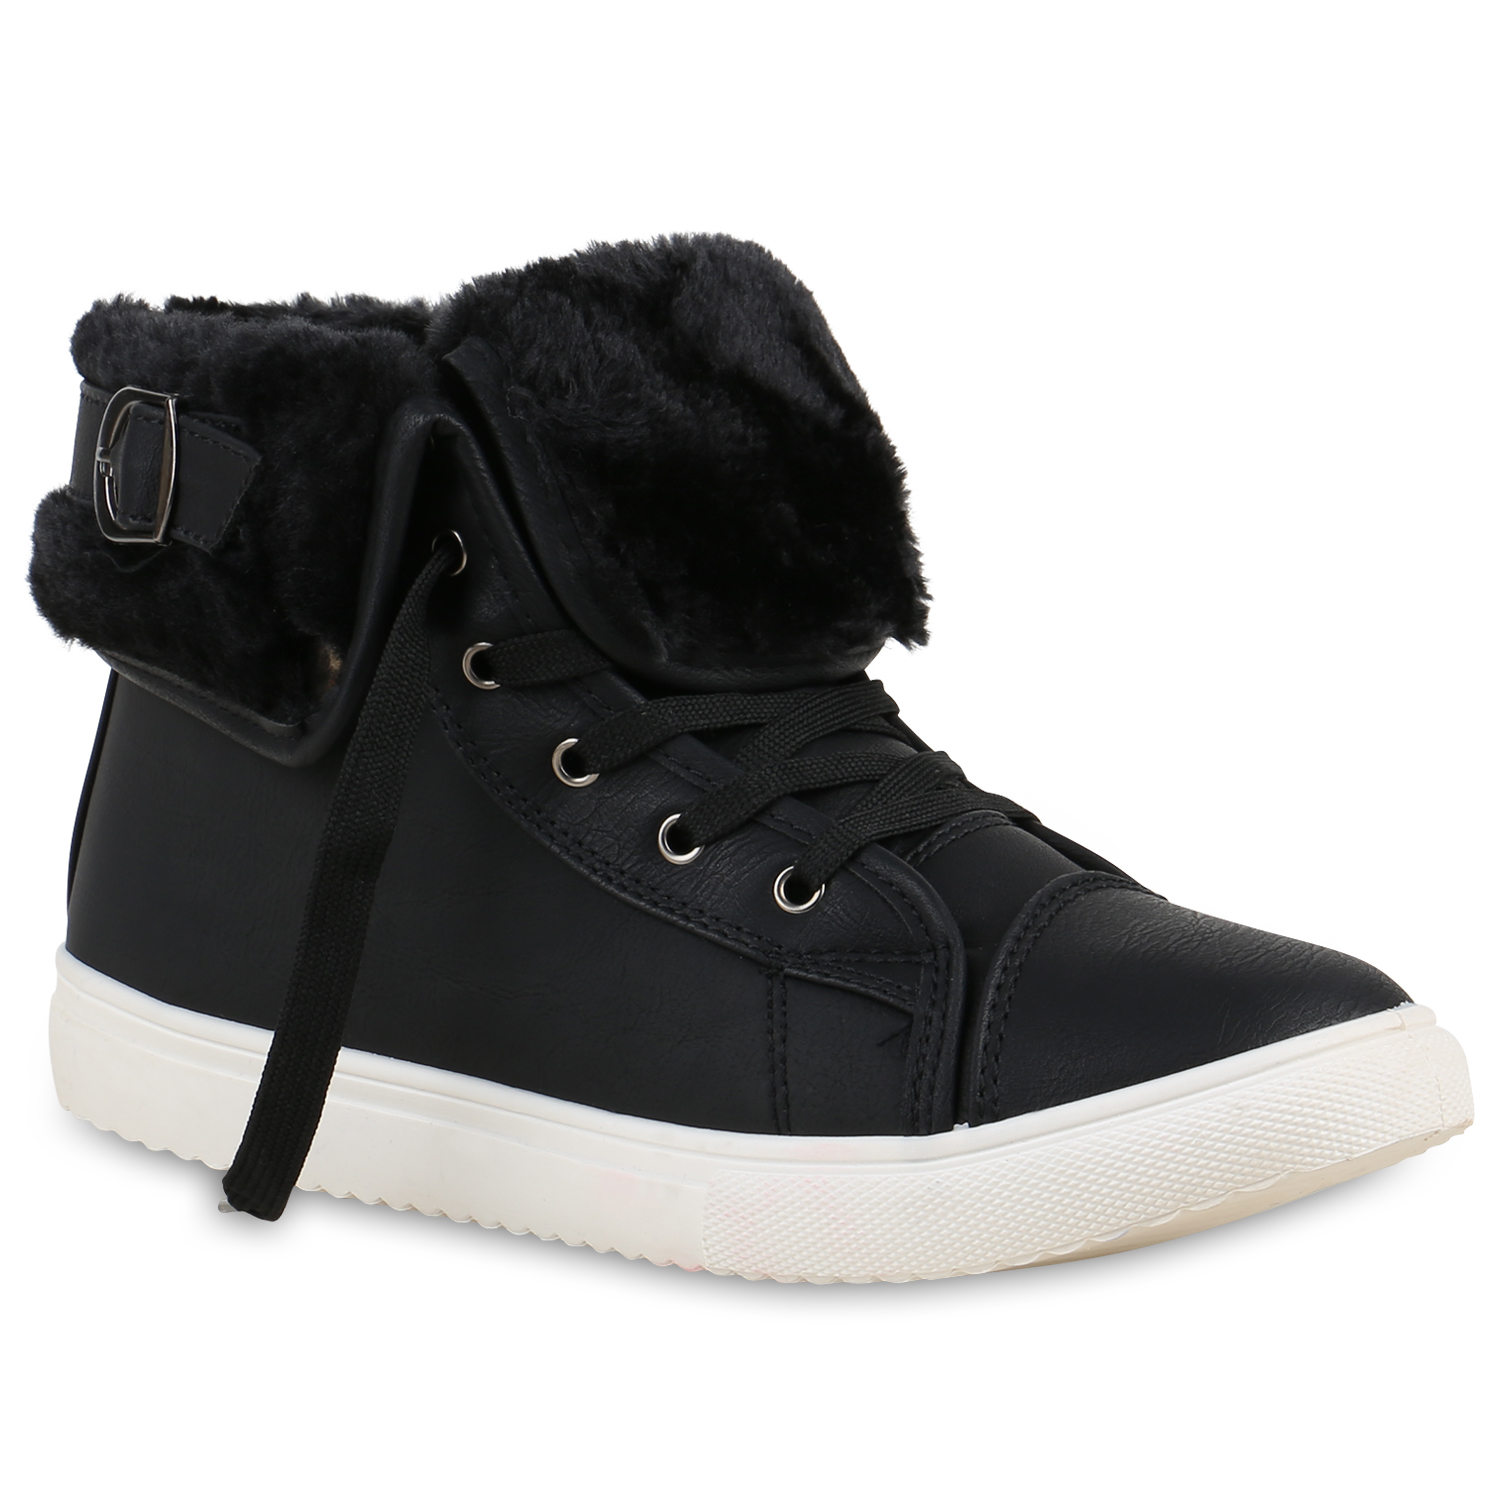 Damen Sneaker high - Schwarz